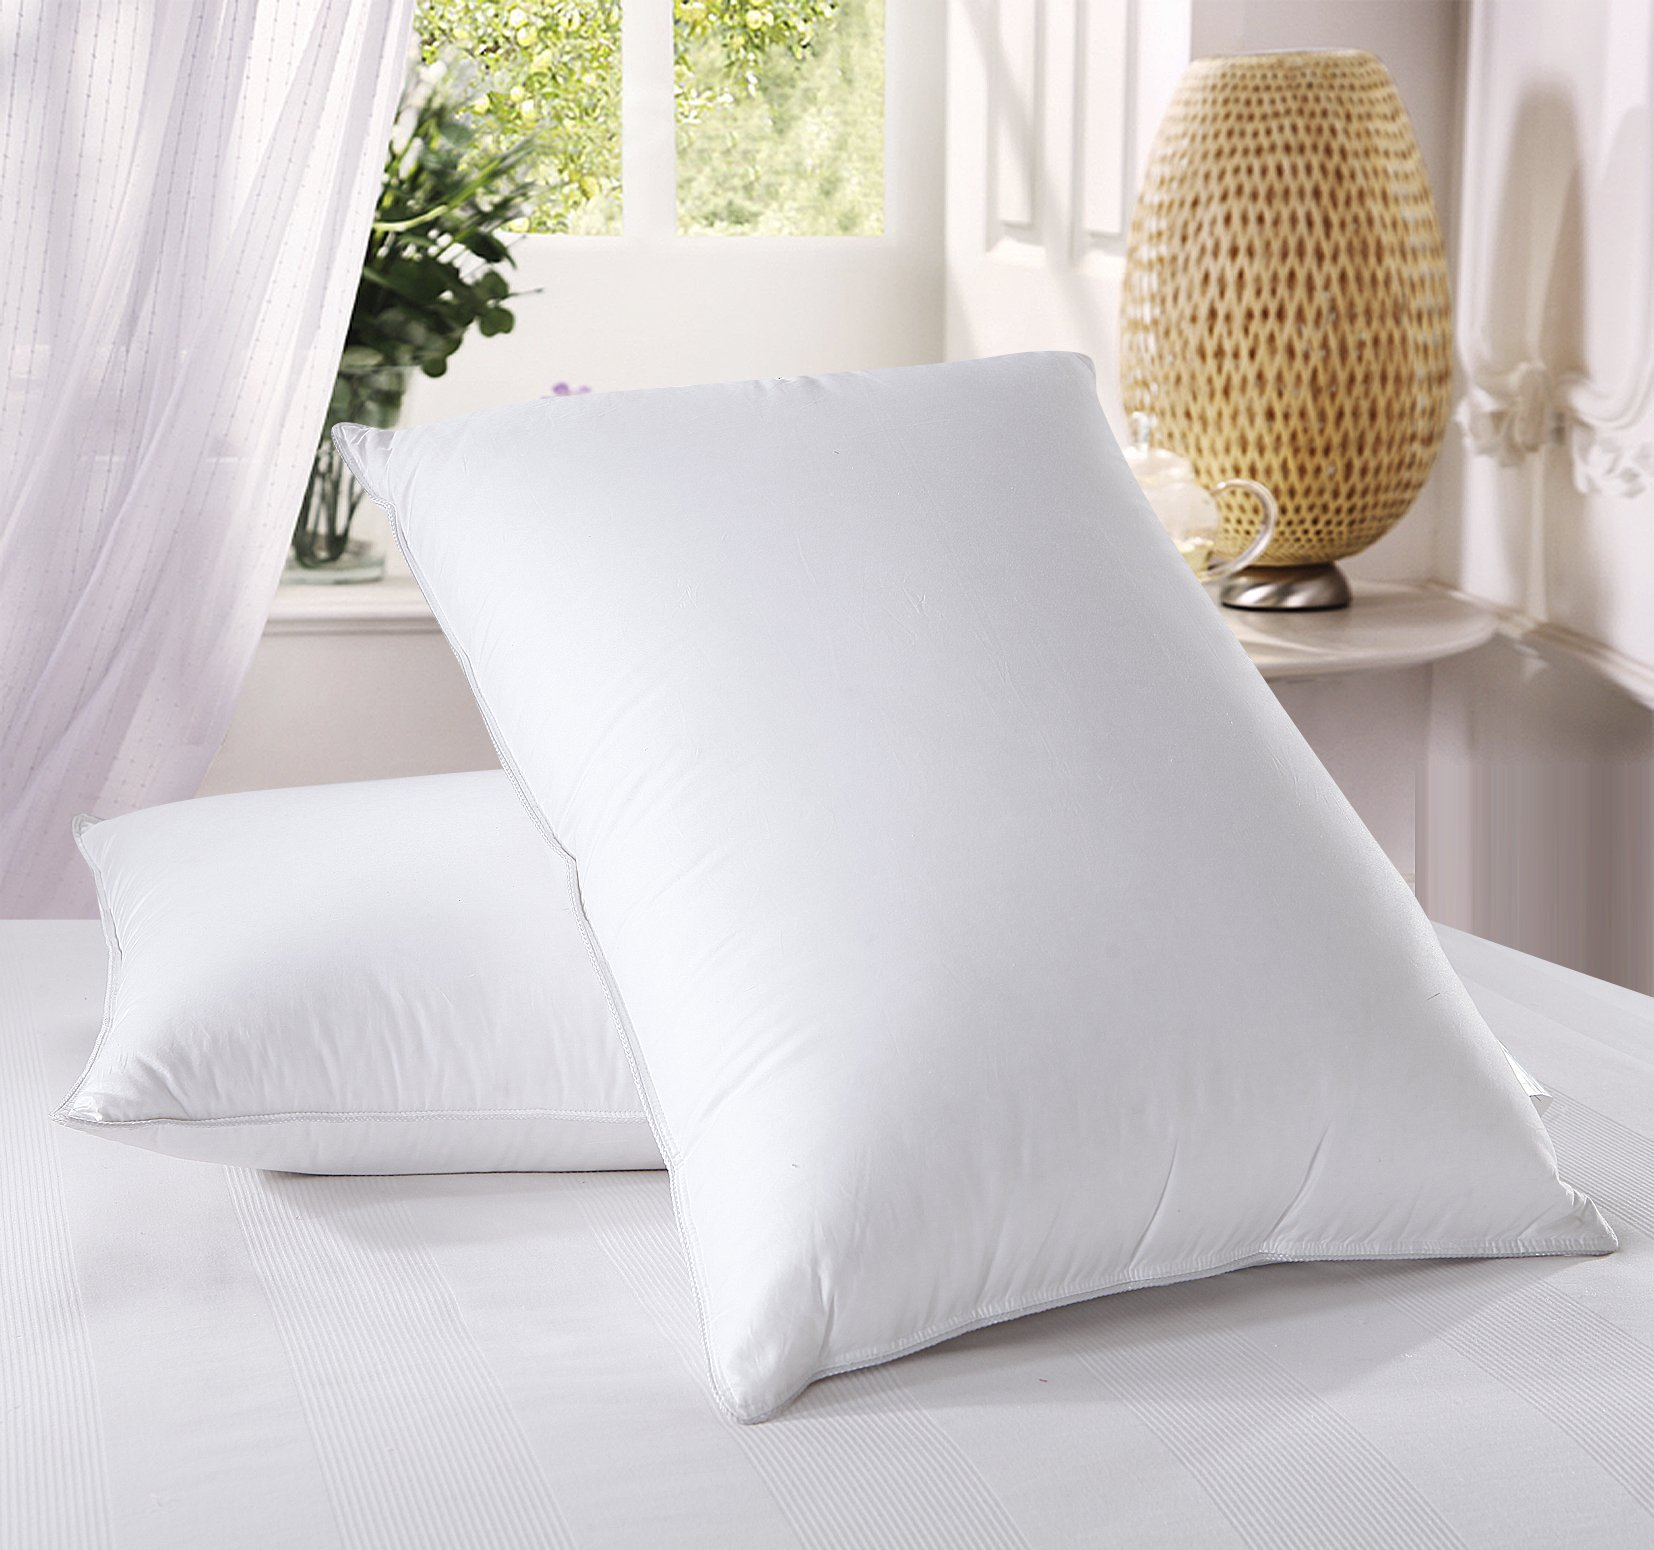 Abripedic Soft Goose Down Pillow - 600 Thread Count, 100% Cotton Shell, Standard / Queen Size, Soft, 1 Single Pillow by Royal Hotel (Image #2)